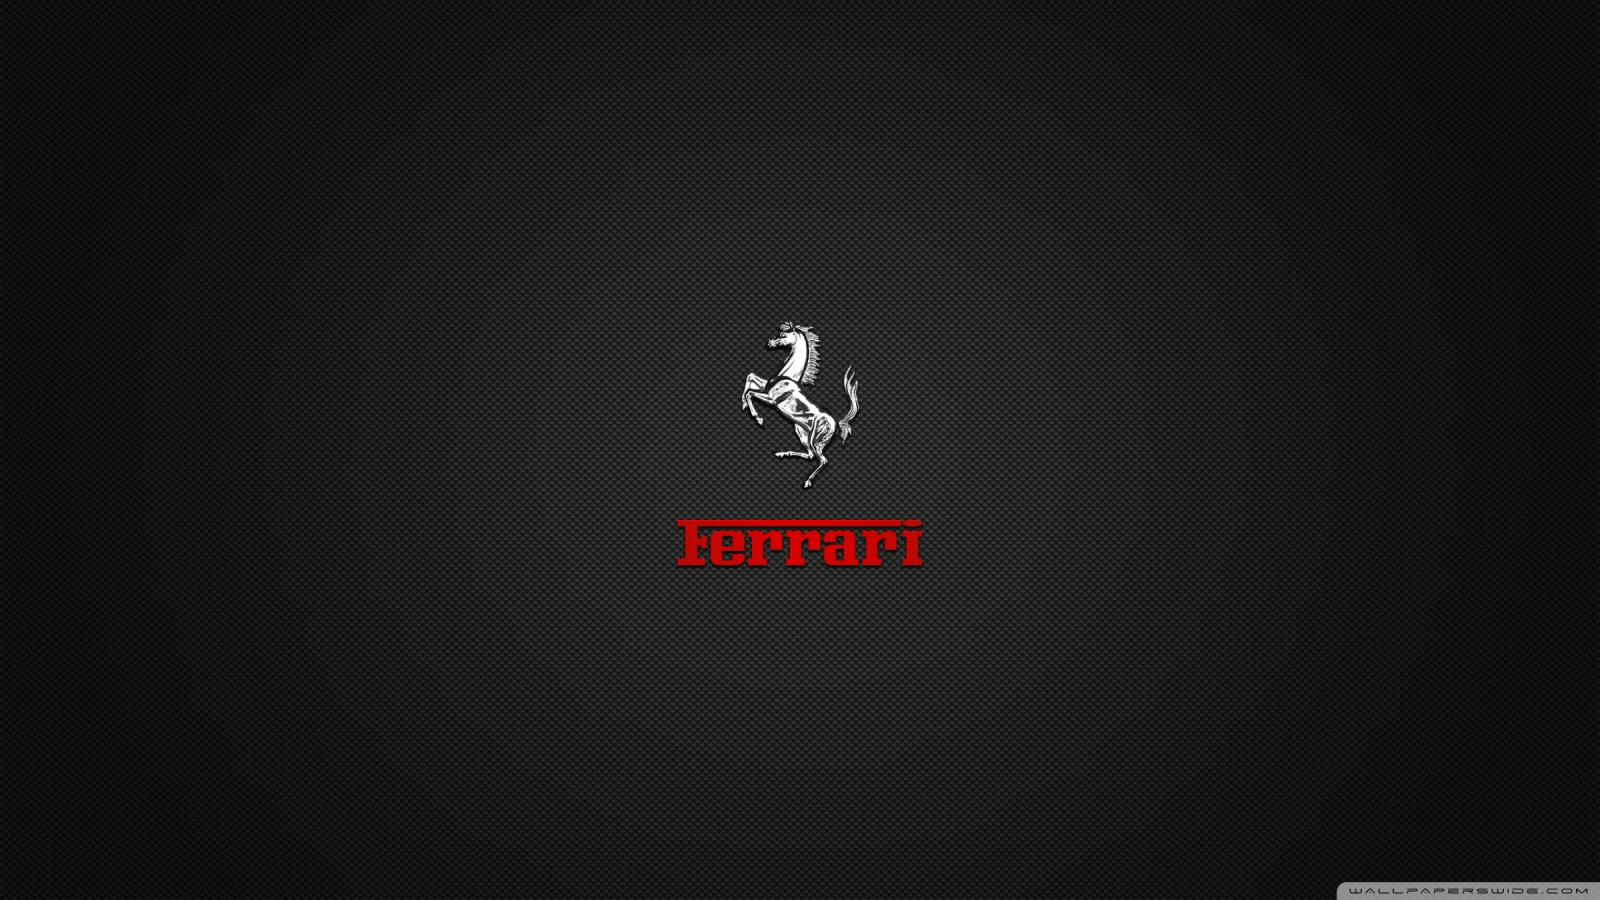 Ferrari Logo Black Background Wallpaper Image source from this